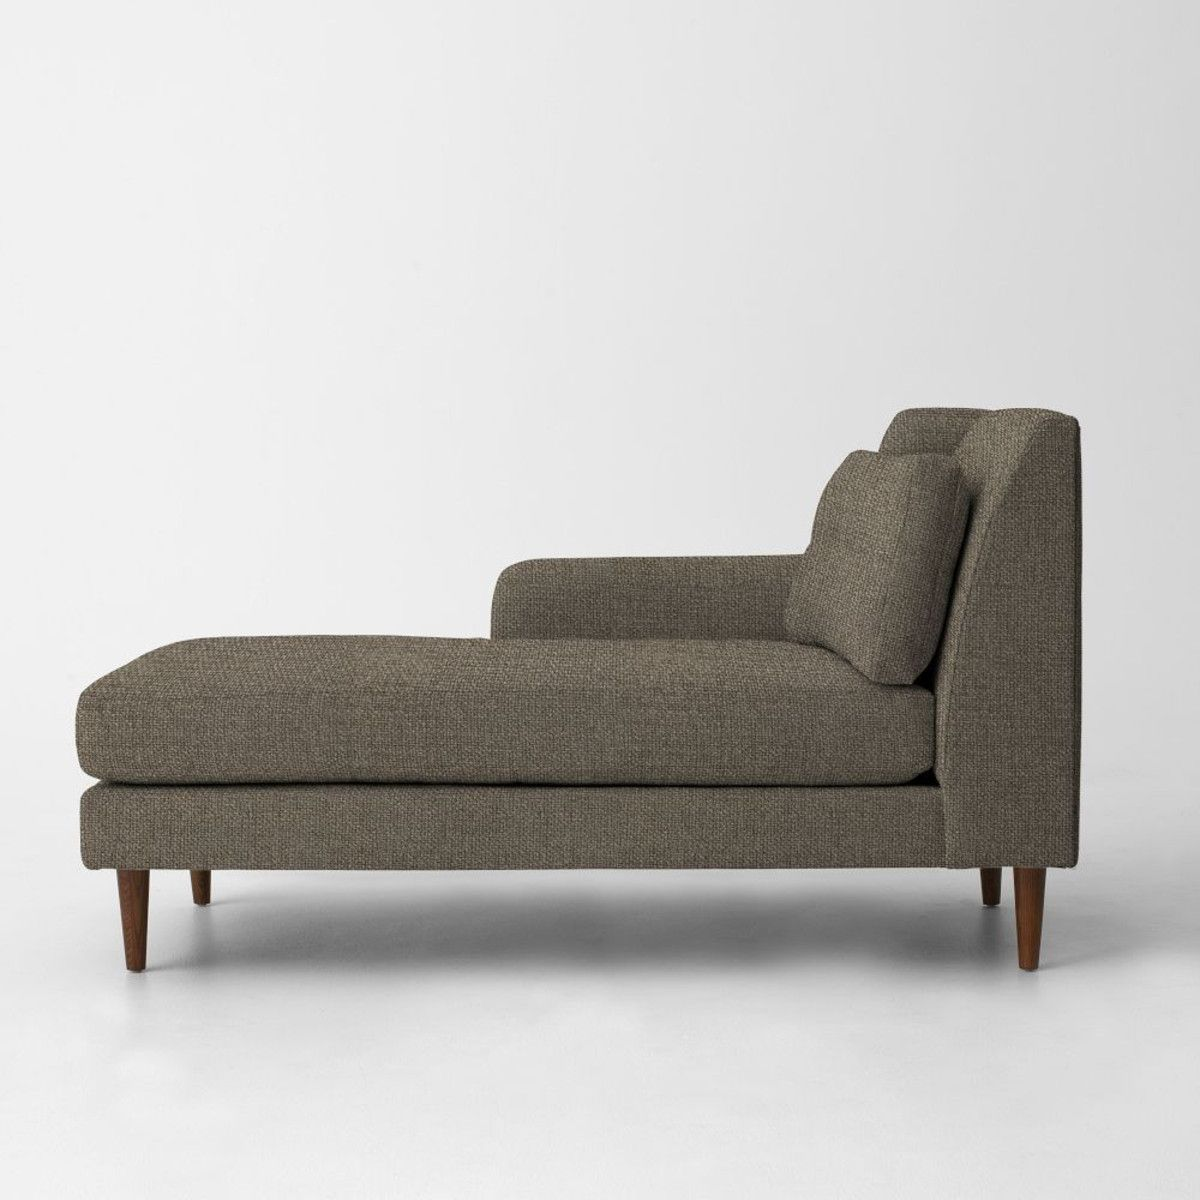 Build Your Own Crosby Sectional West Elm Uk Mid Century Sectional Chaise Sectional